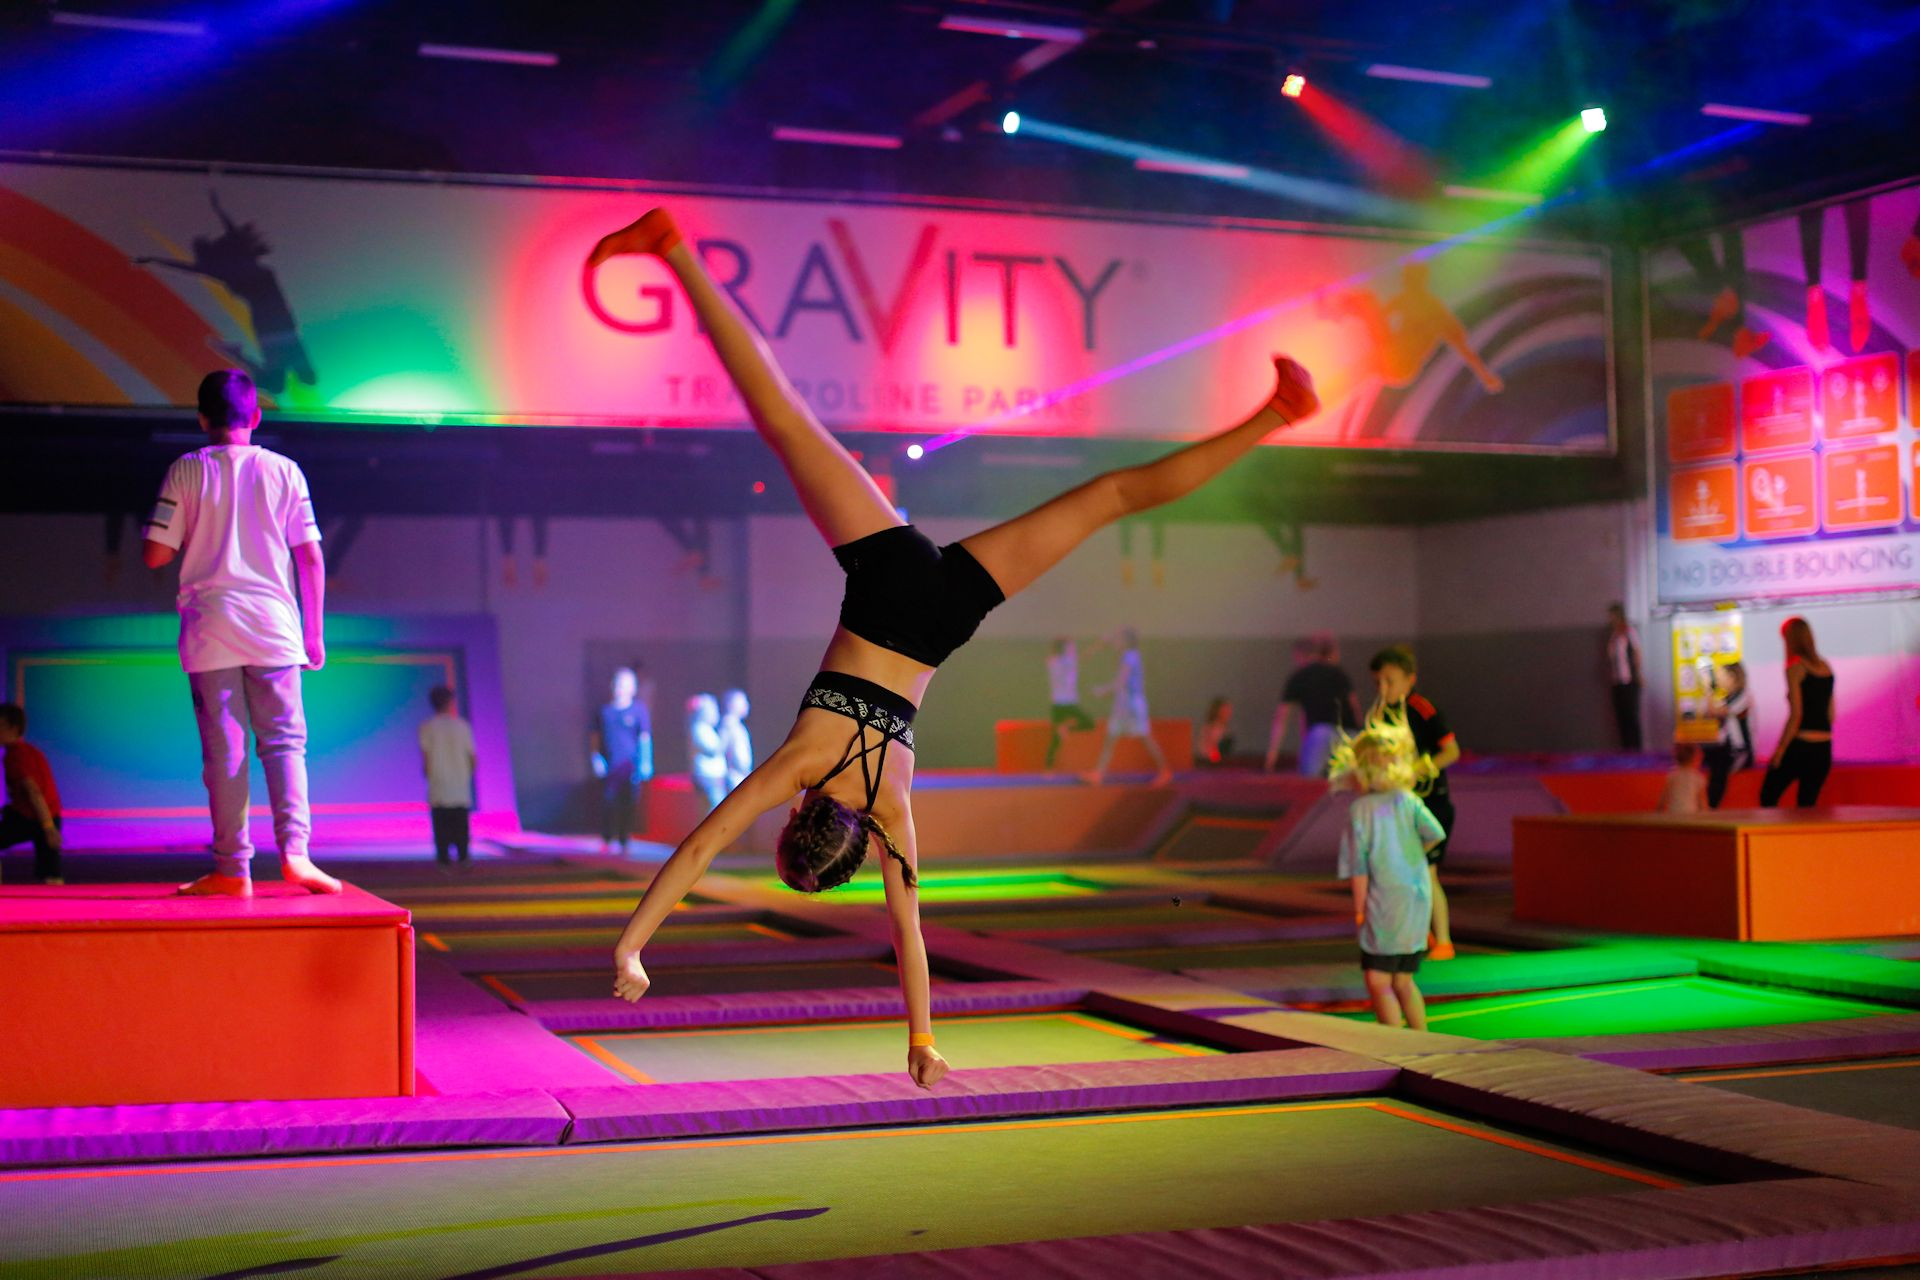 Gravity Trampoline Park Edinburgh City Pass